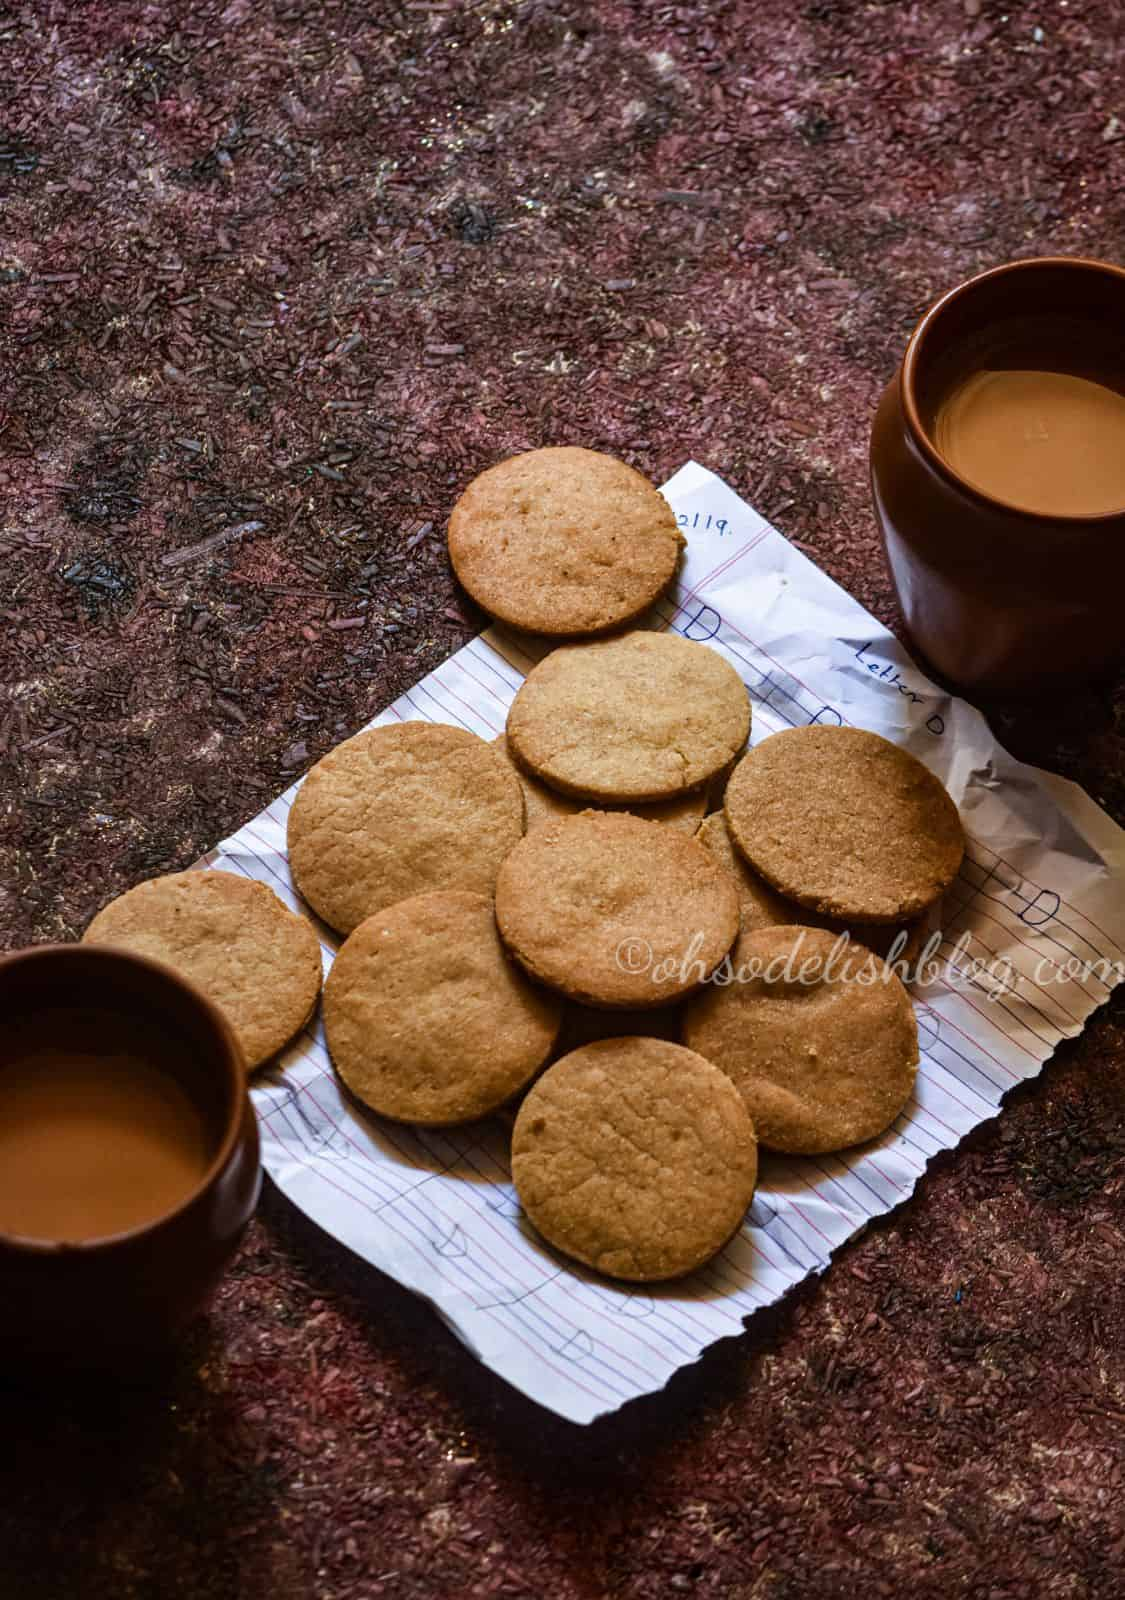 Madras tea shop style butter biscuits